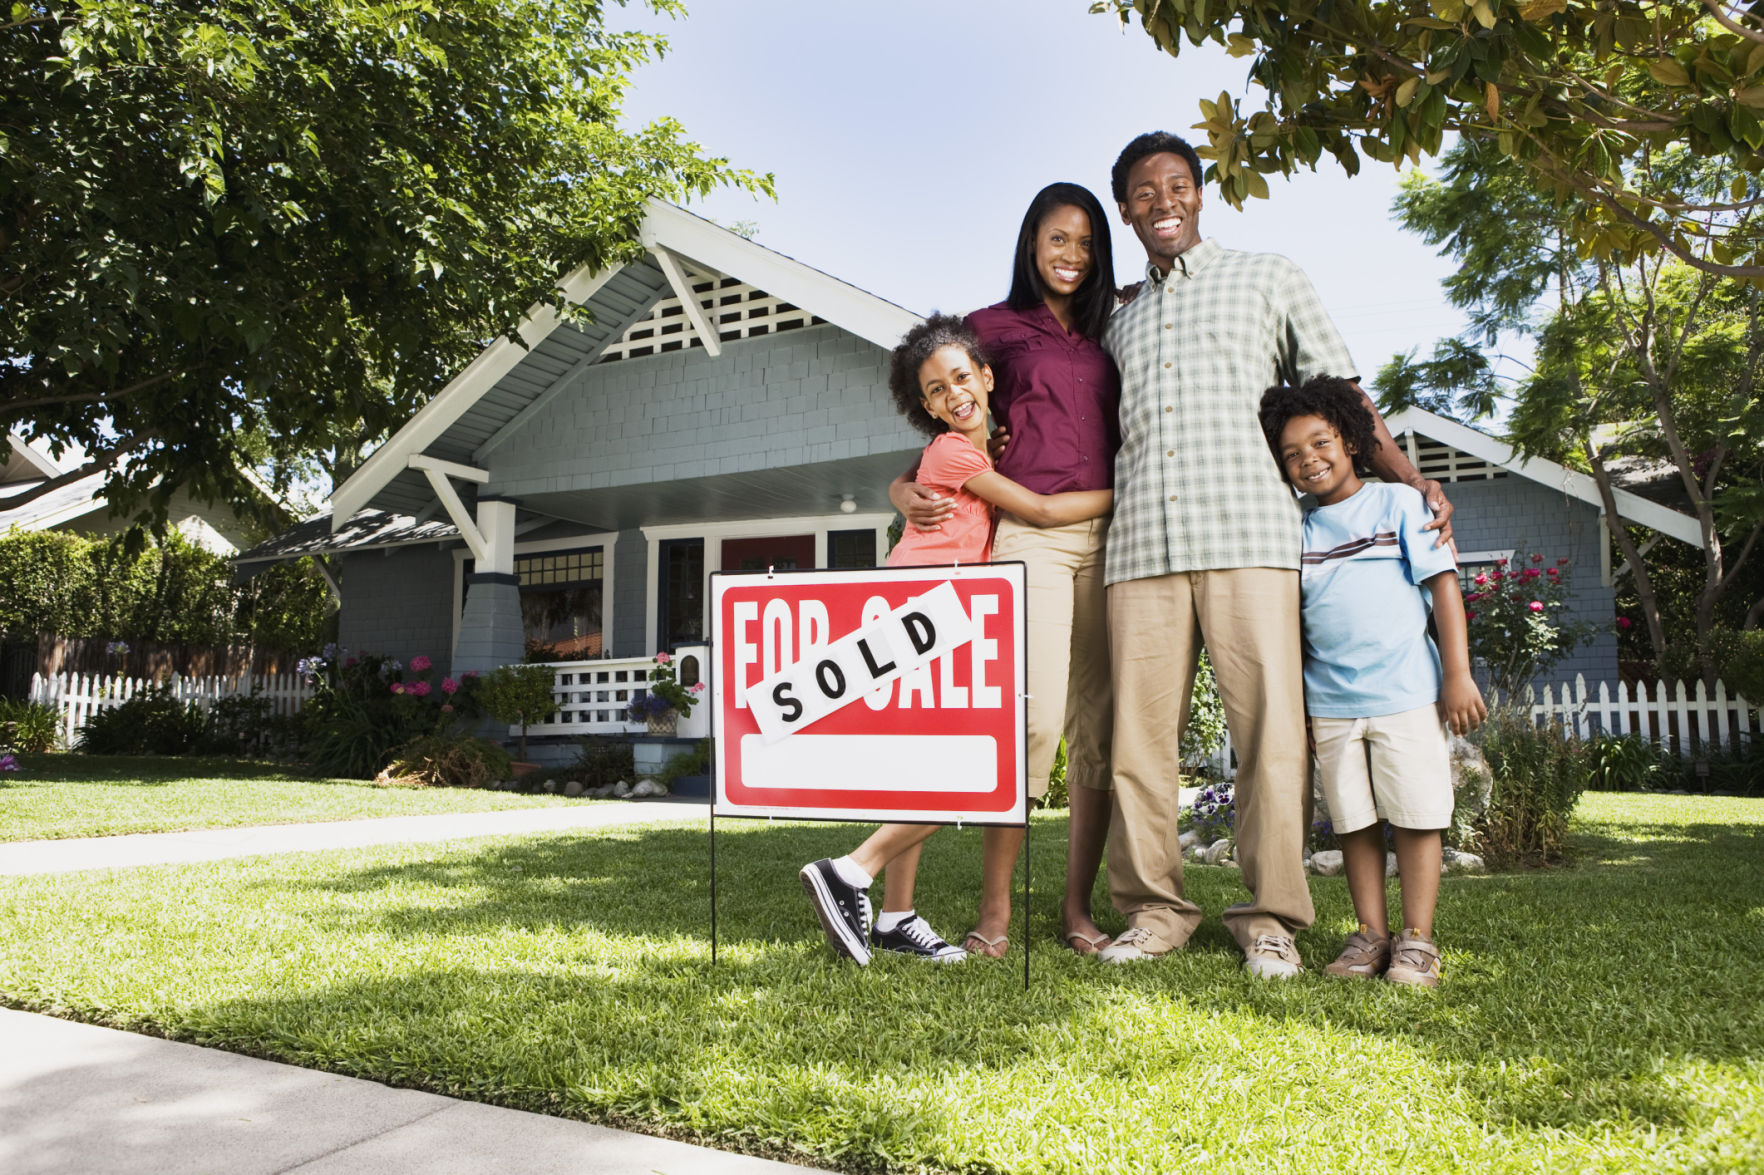 Family standing in front of house with sold sign